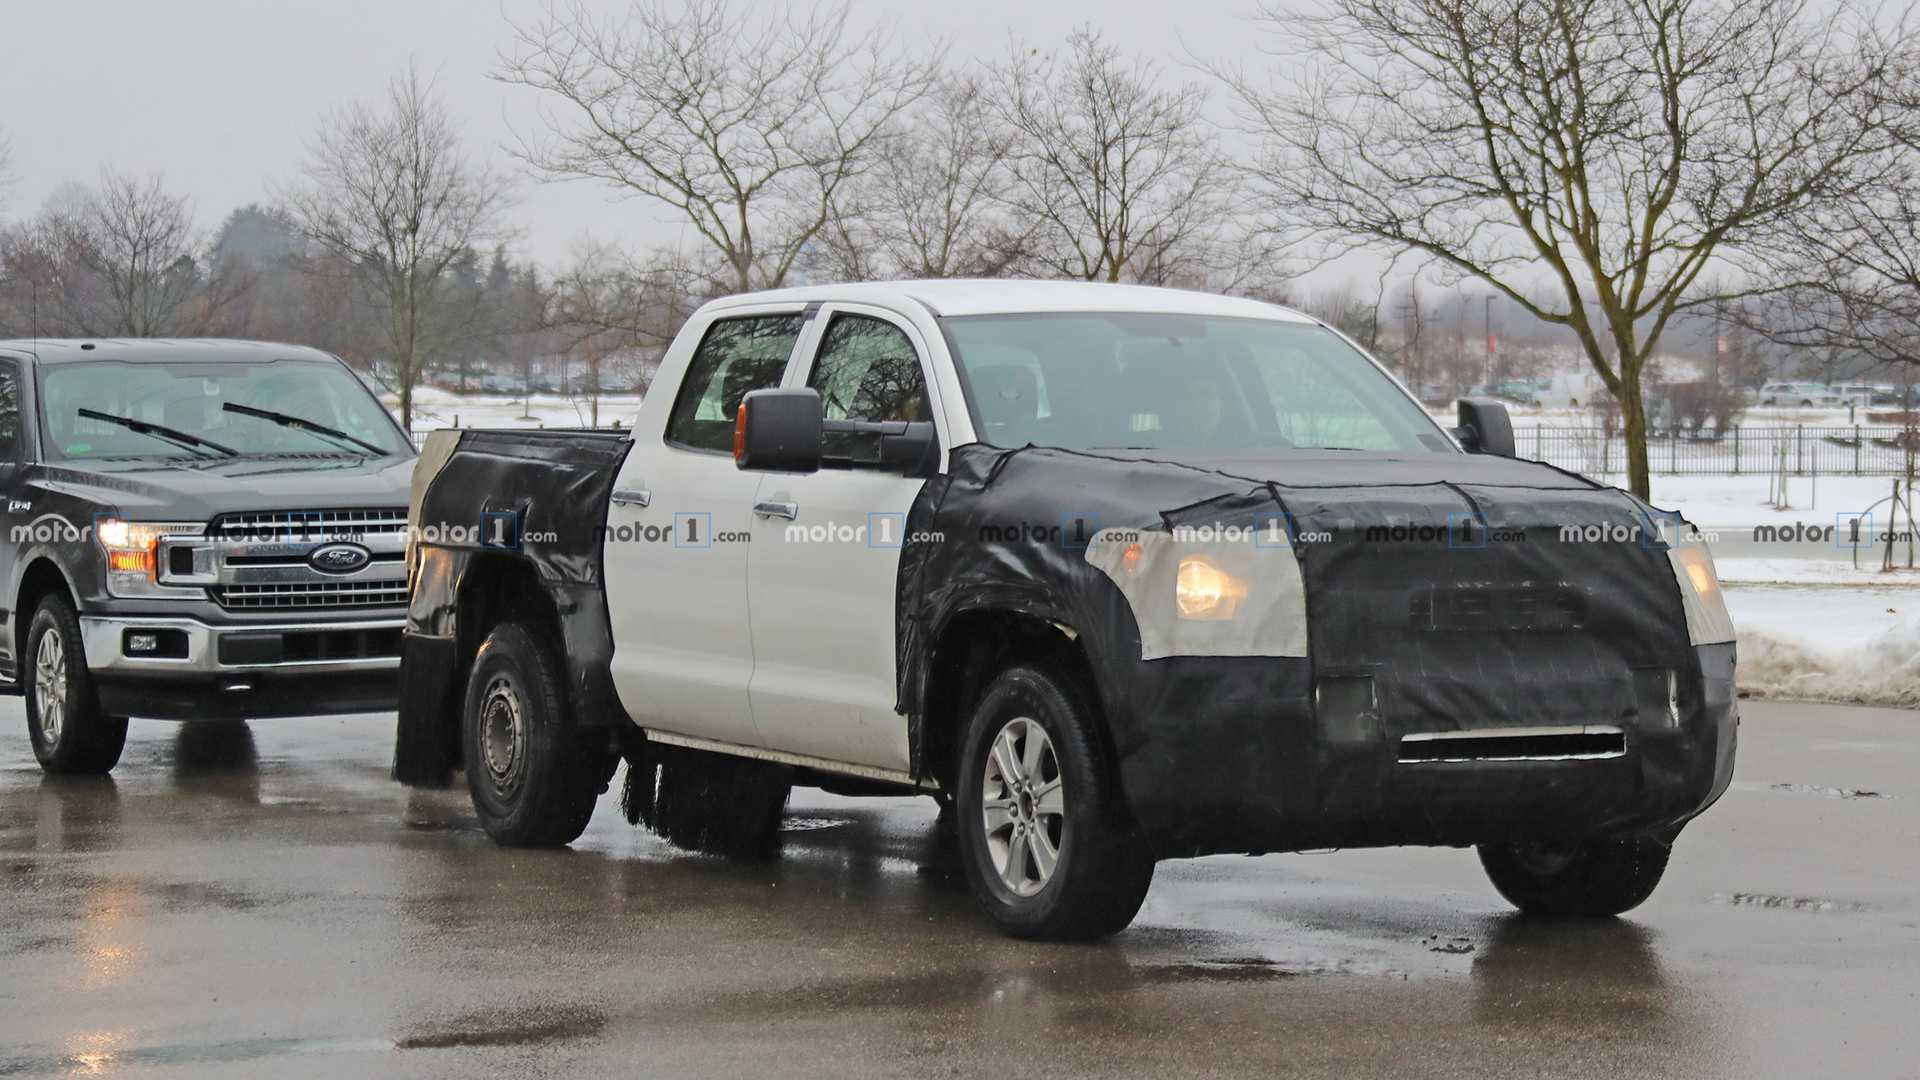 44 A 2020 Toyota Hilux Spy Shots Price And Review